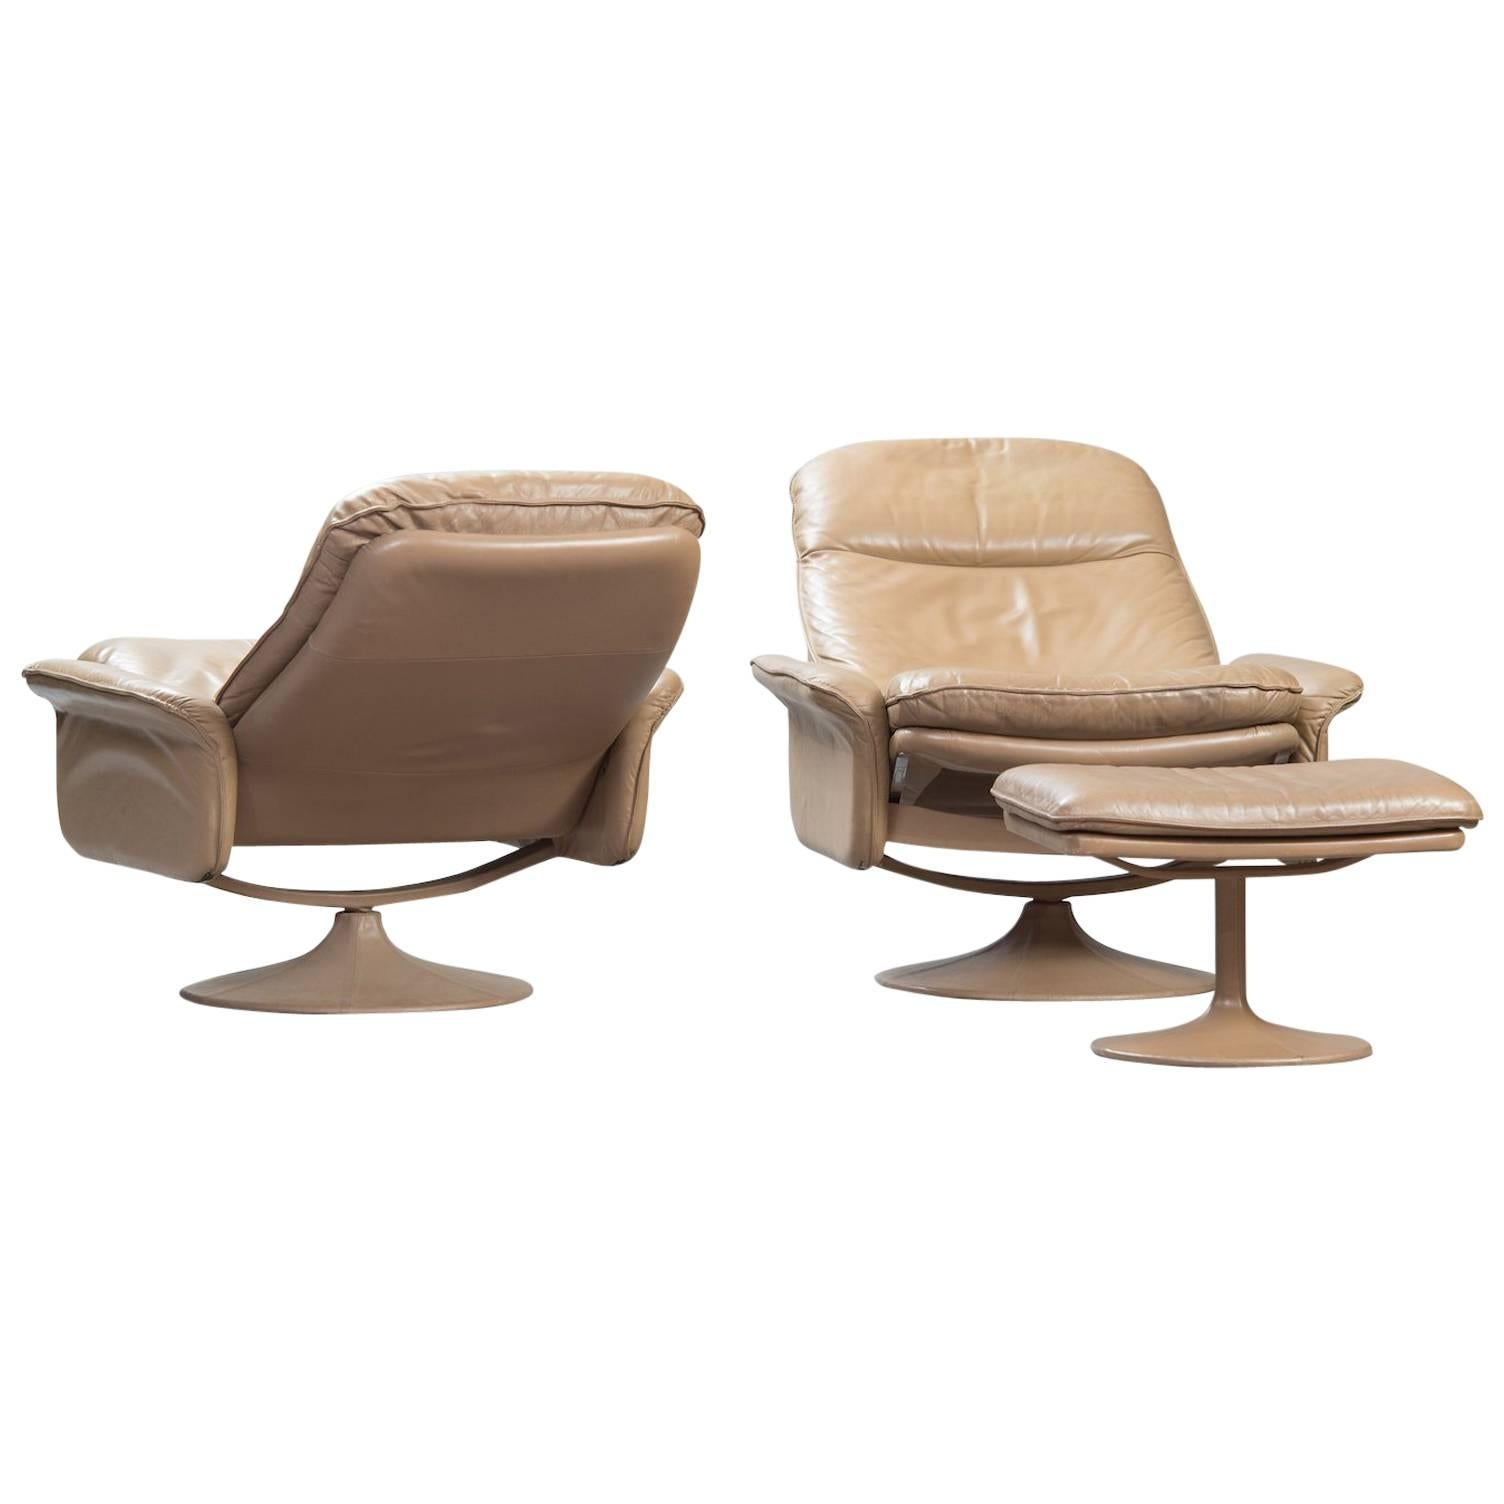 De Sede Reclining Leather Armchairs With Ottoman, Model DS 50, Set Of Two